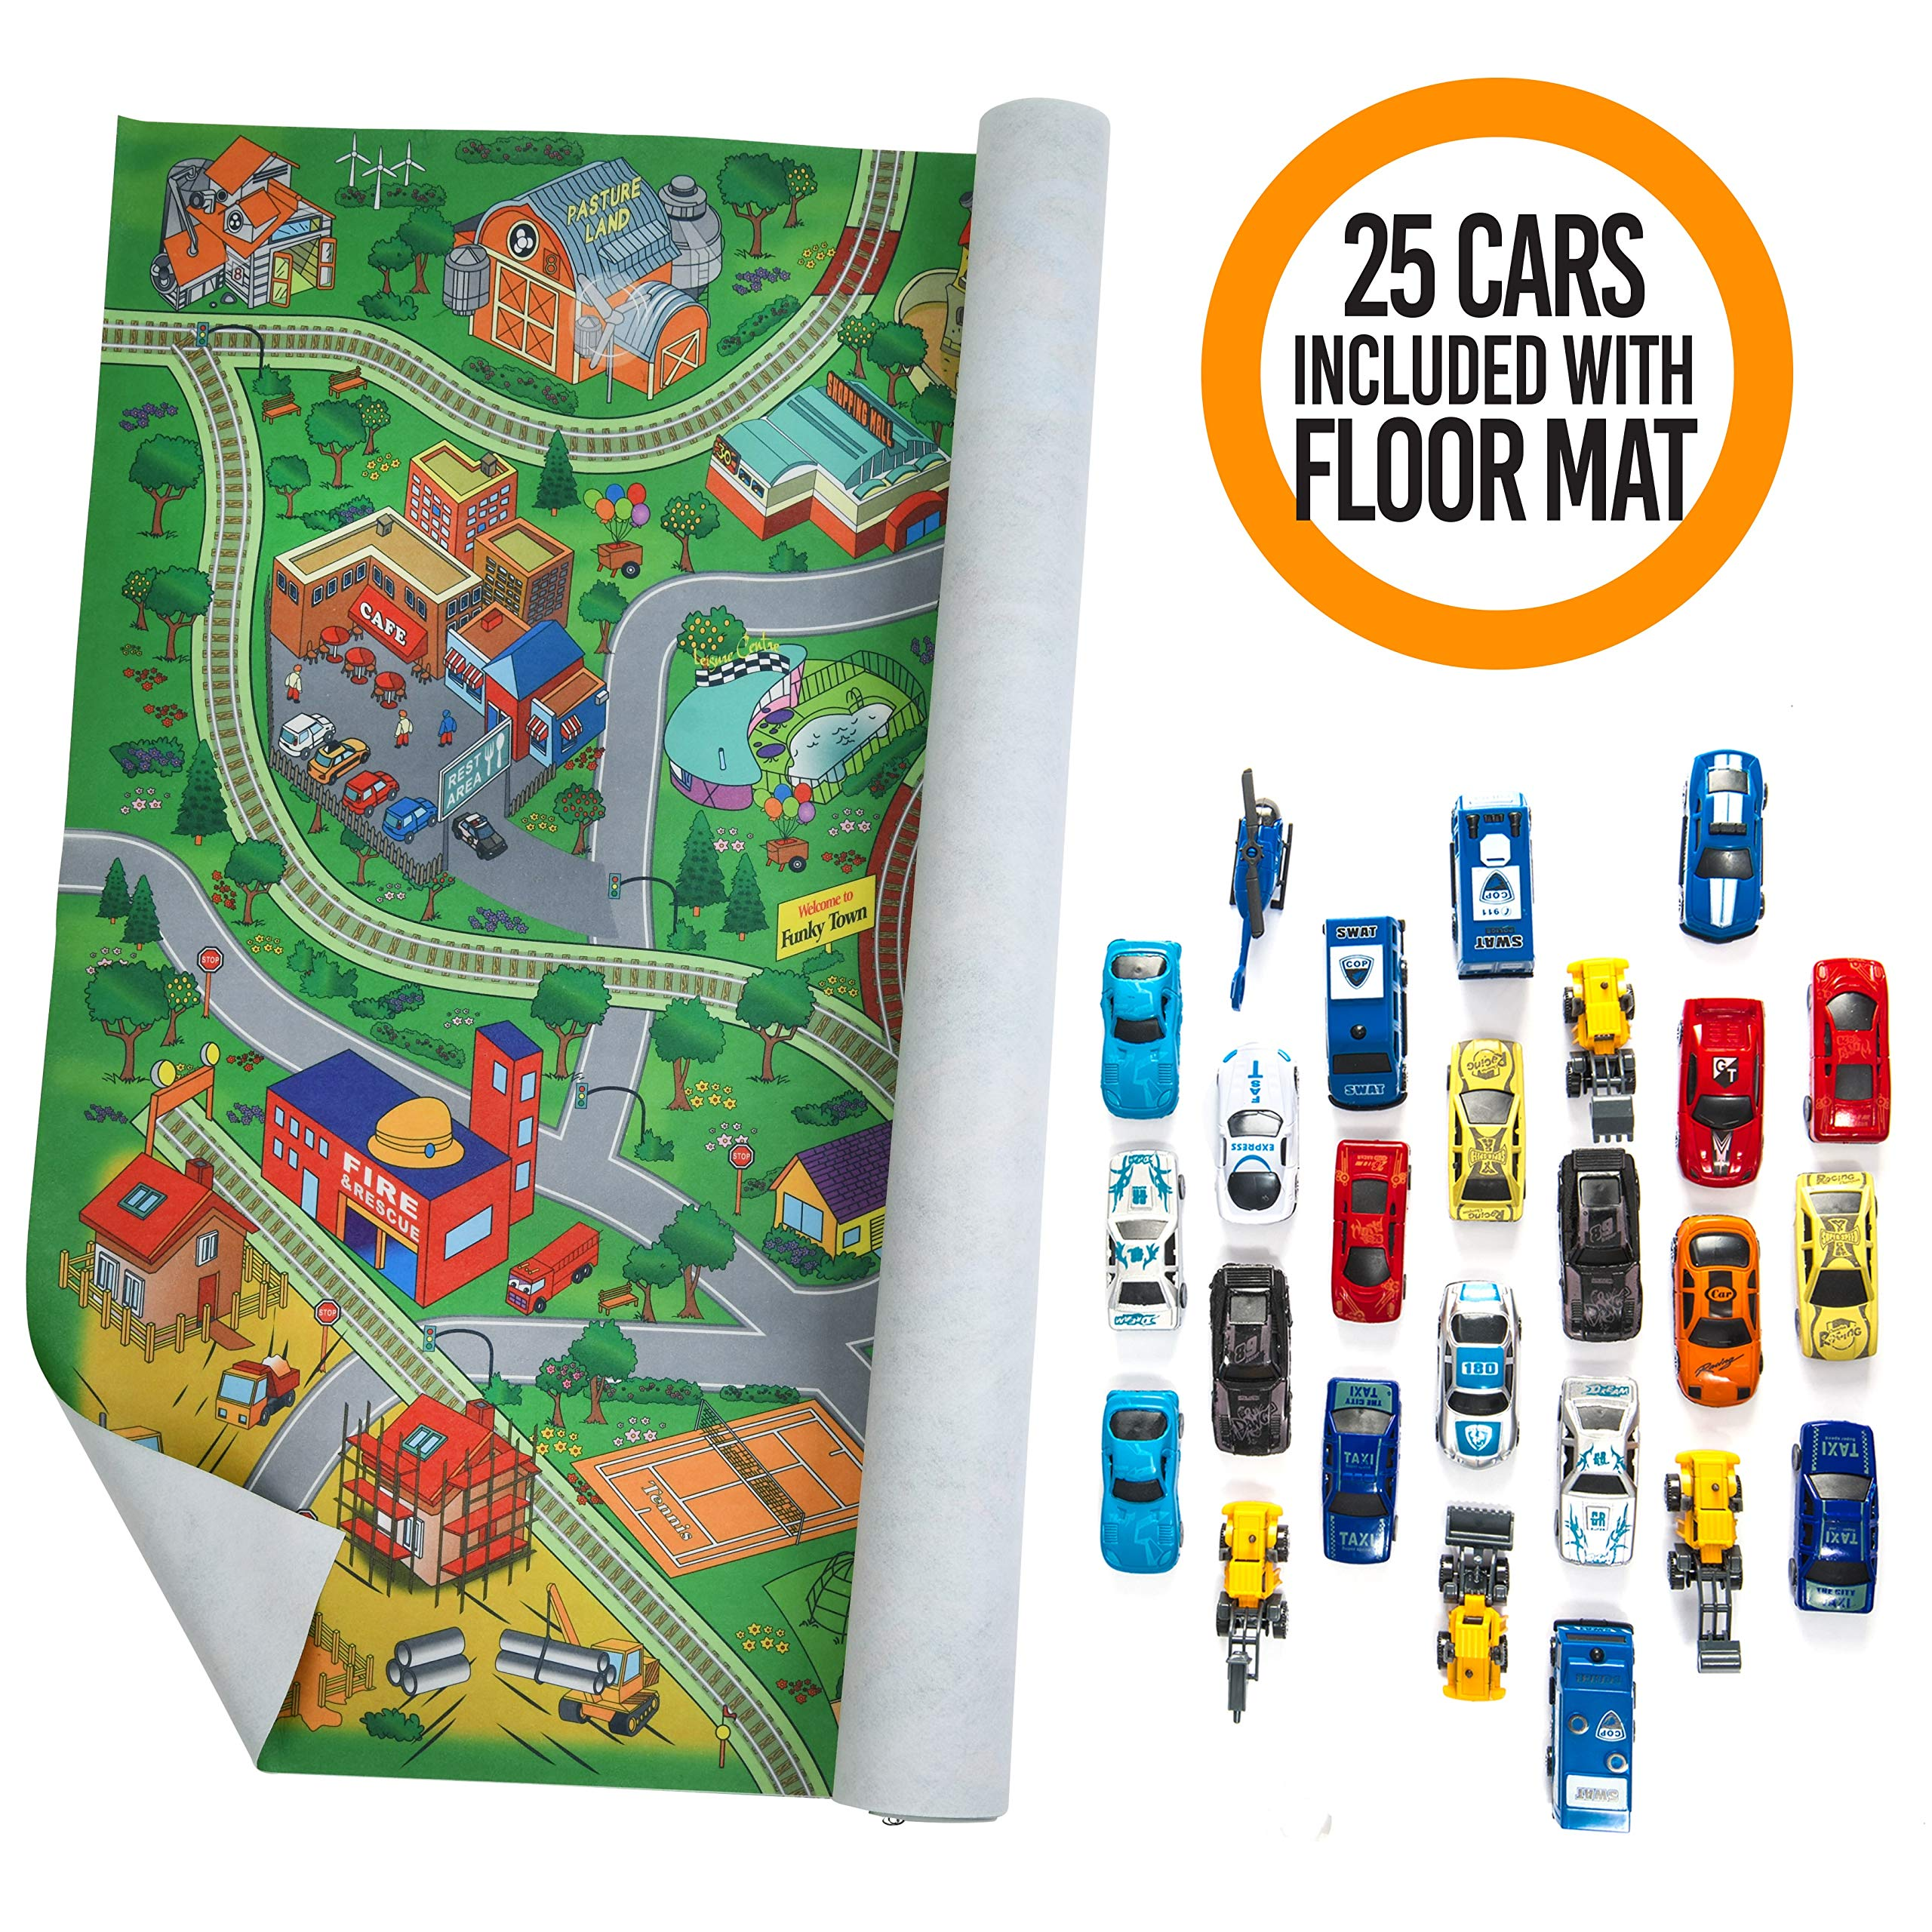 Prextex Giant Fabric Play Mat with 25 Die Cast Toy Cars Included (Play Mat Size 5x5 Feet)